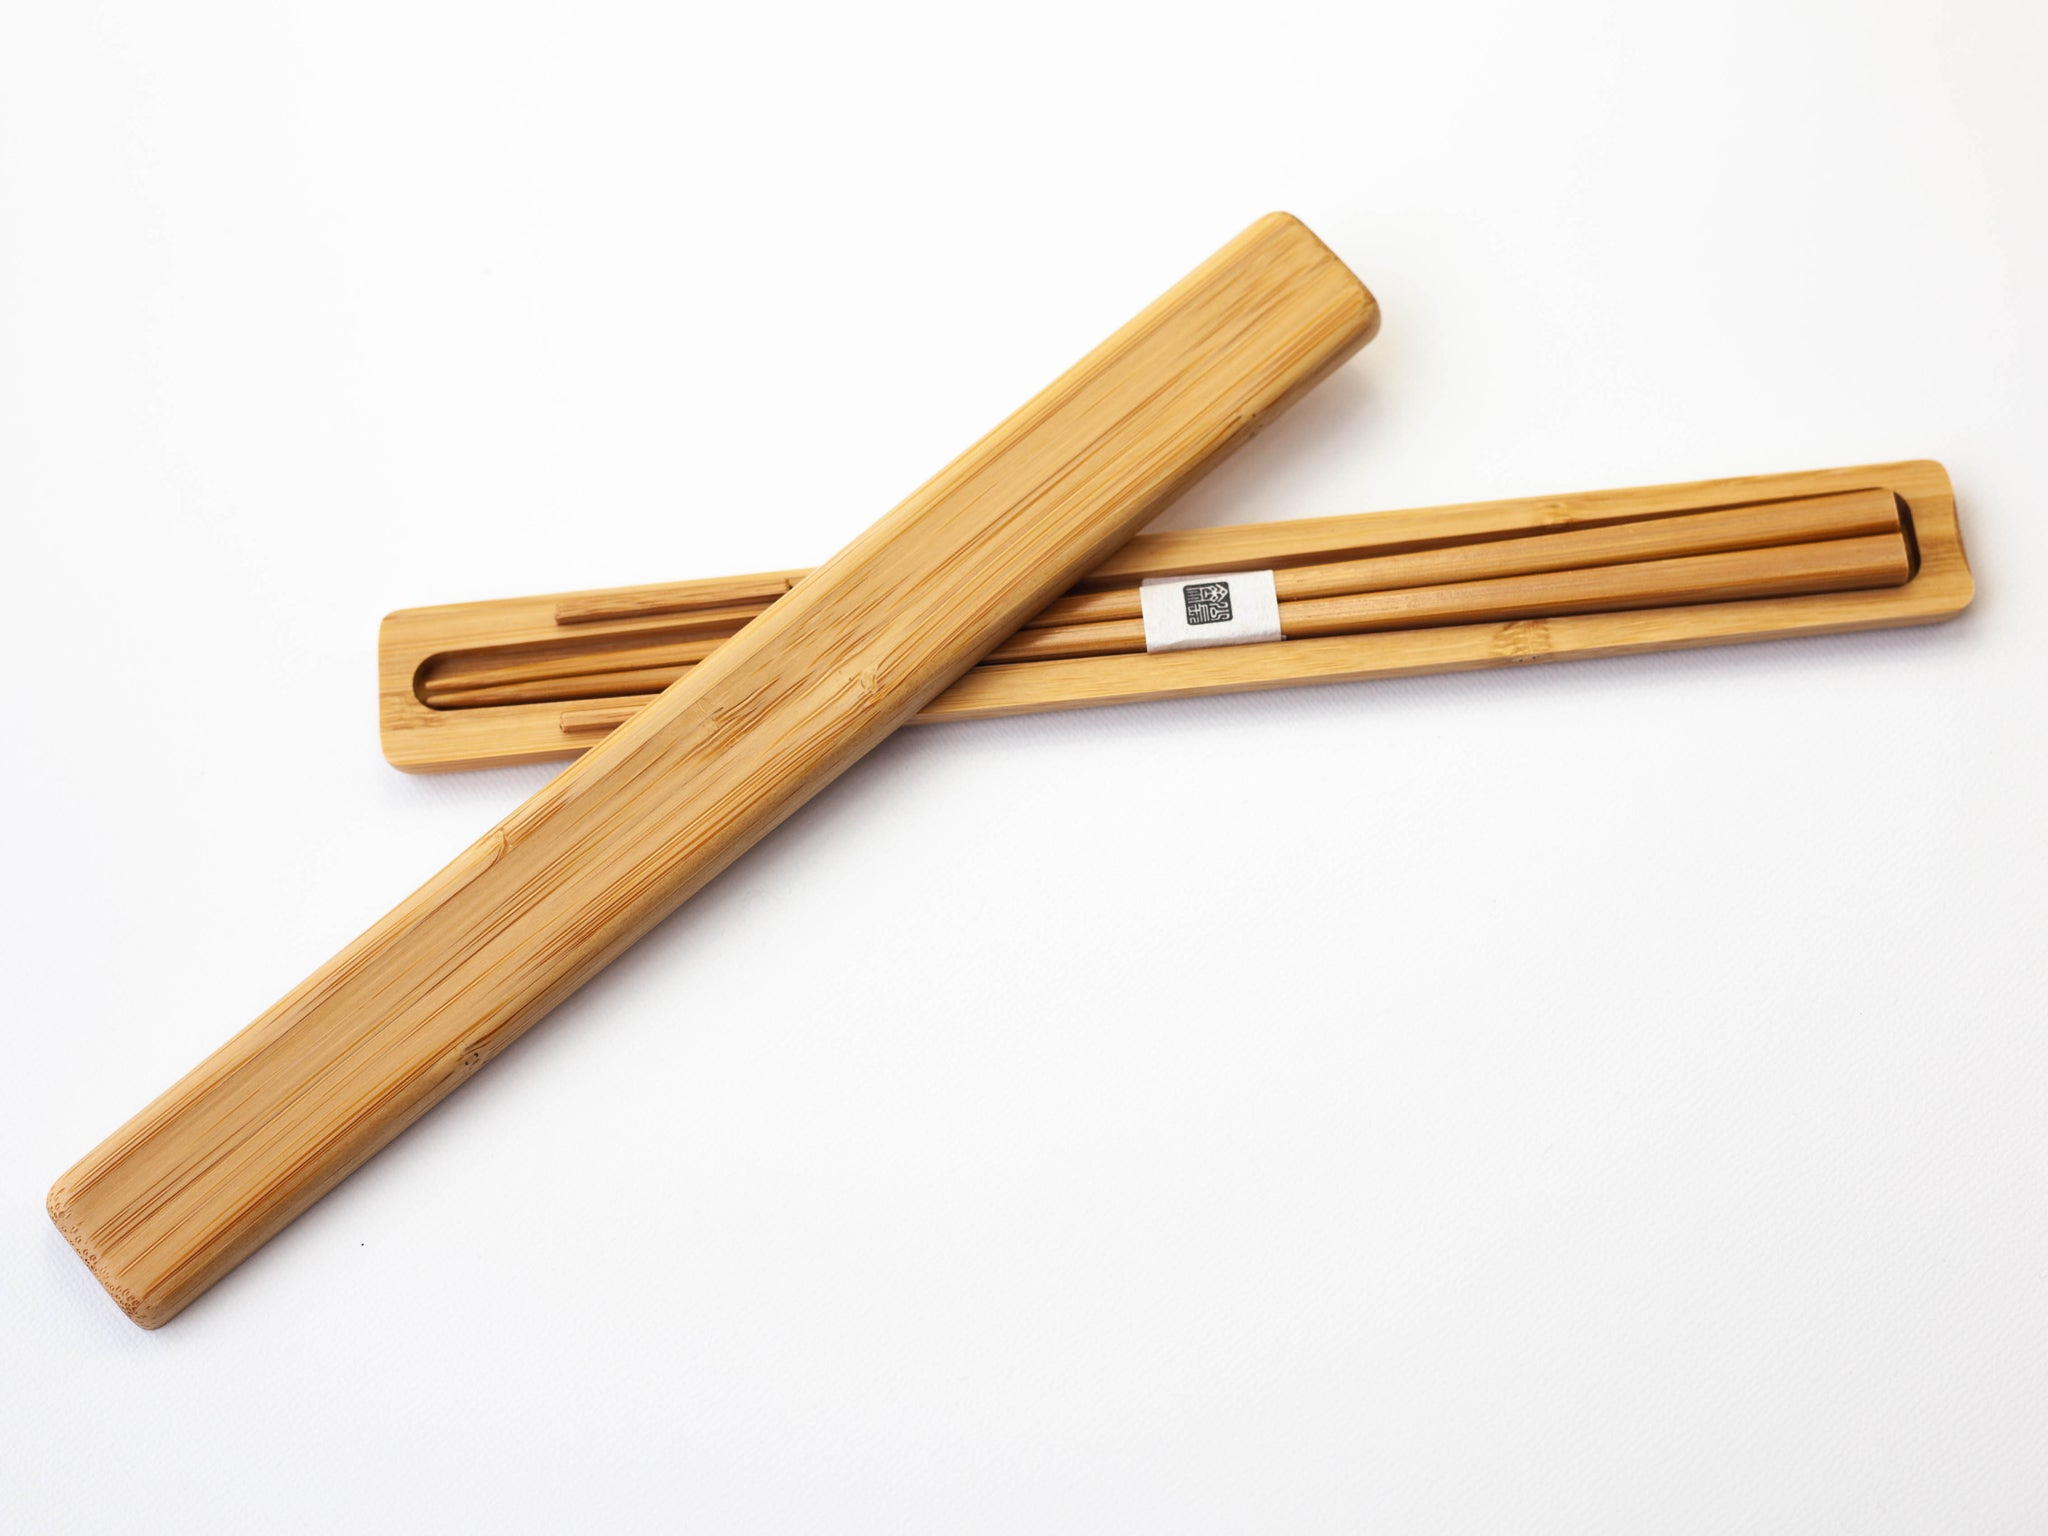 Bamboo Chopsticks Set | Black by Kohchosai Kosuga - Bento&co Japanese Bento Lunch Boxes and Kitchenware Specialists